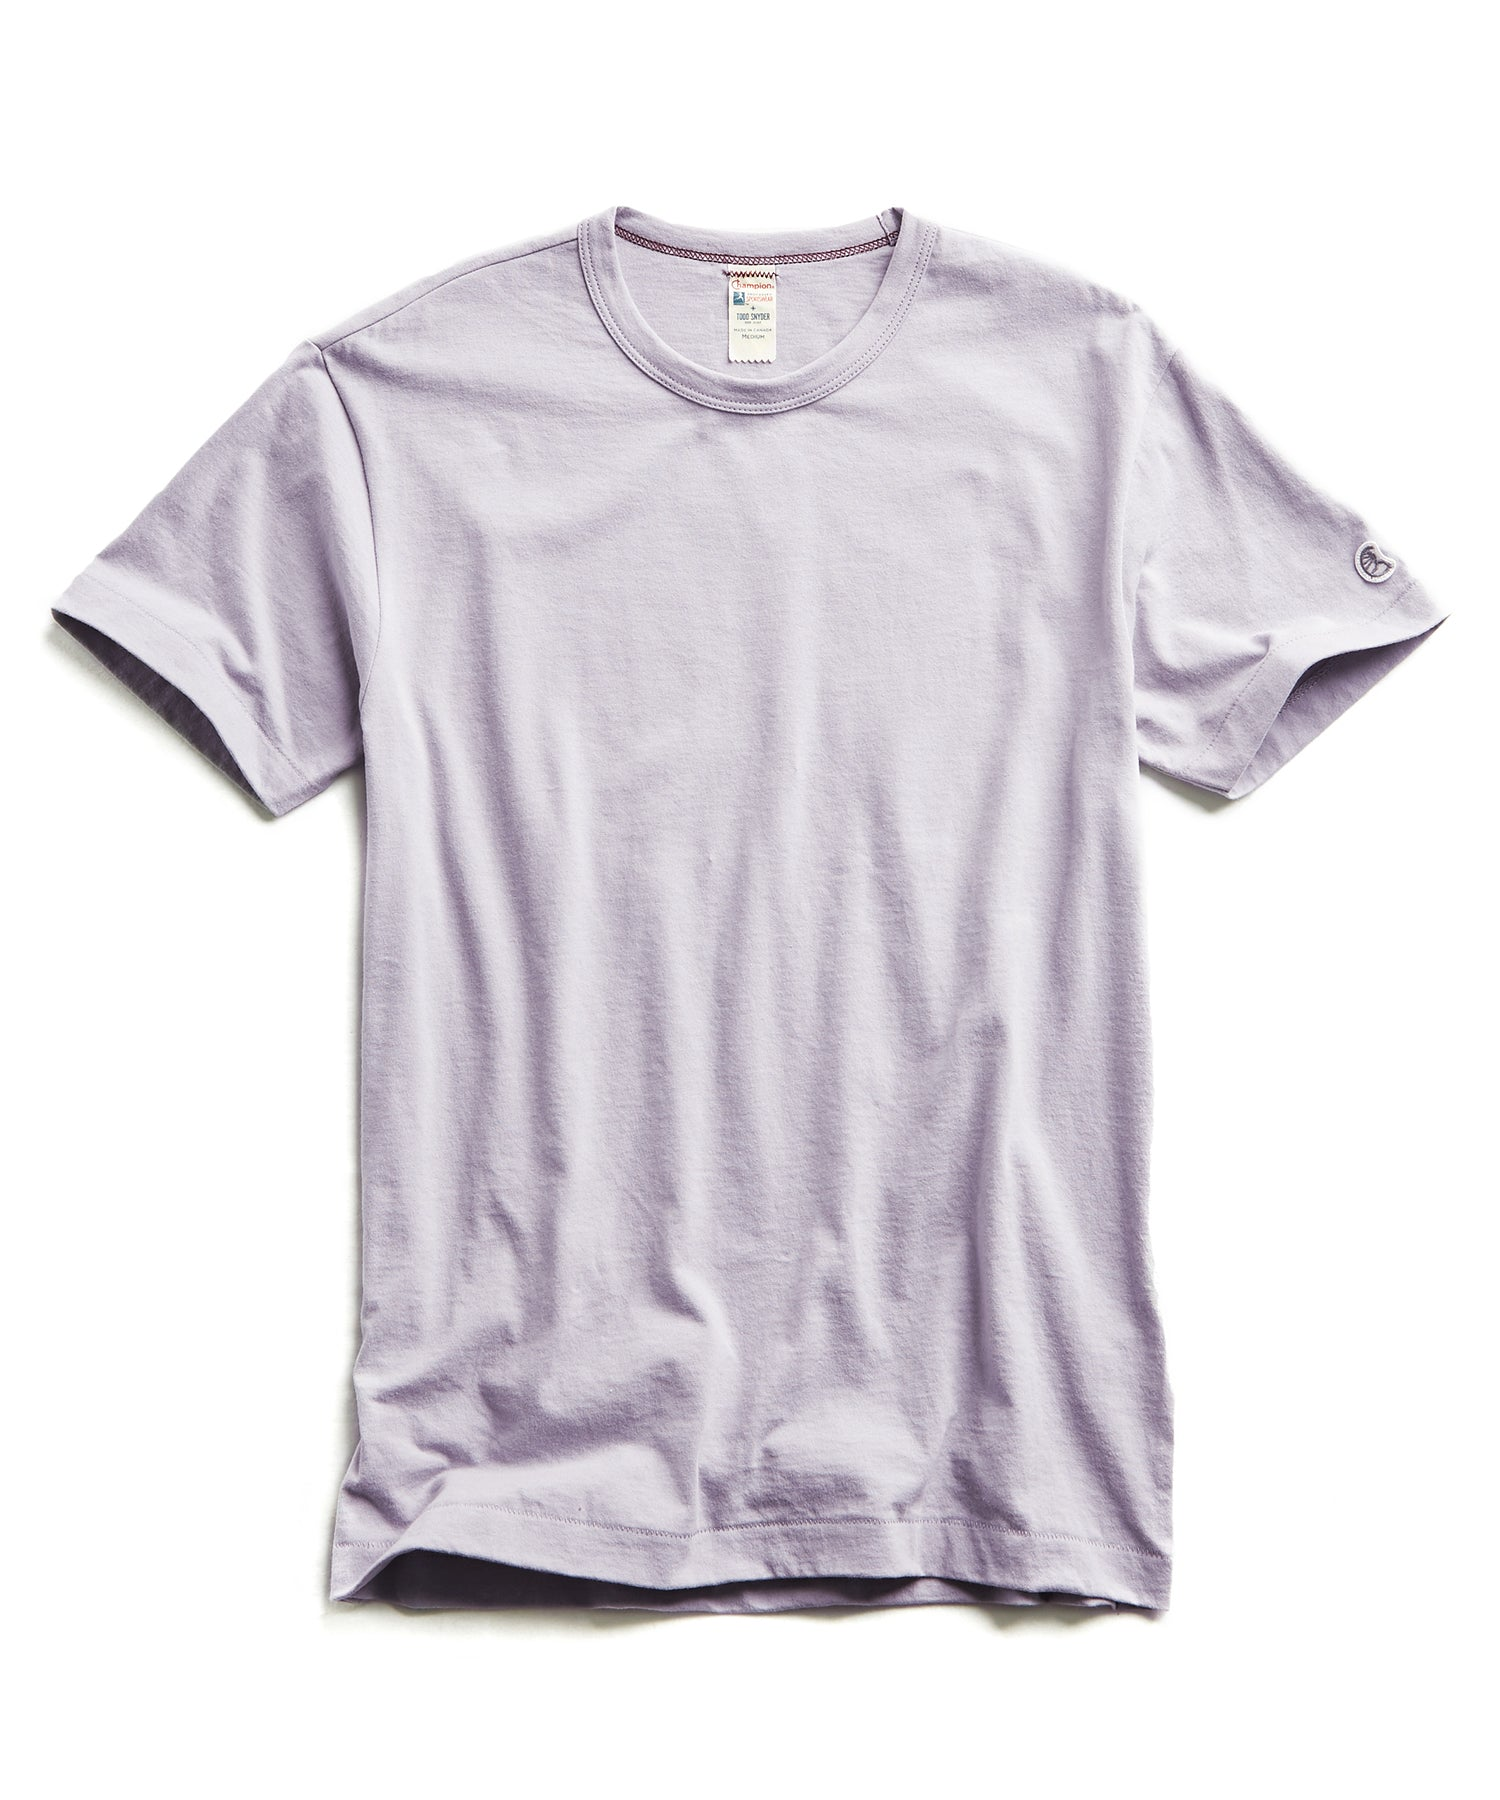 Champion Basic Jersey Tee in Wisteria